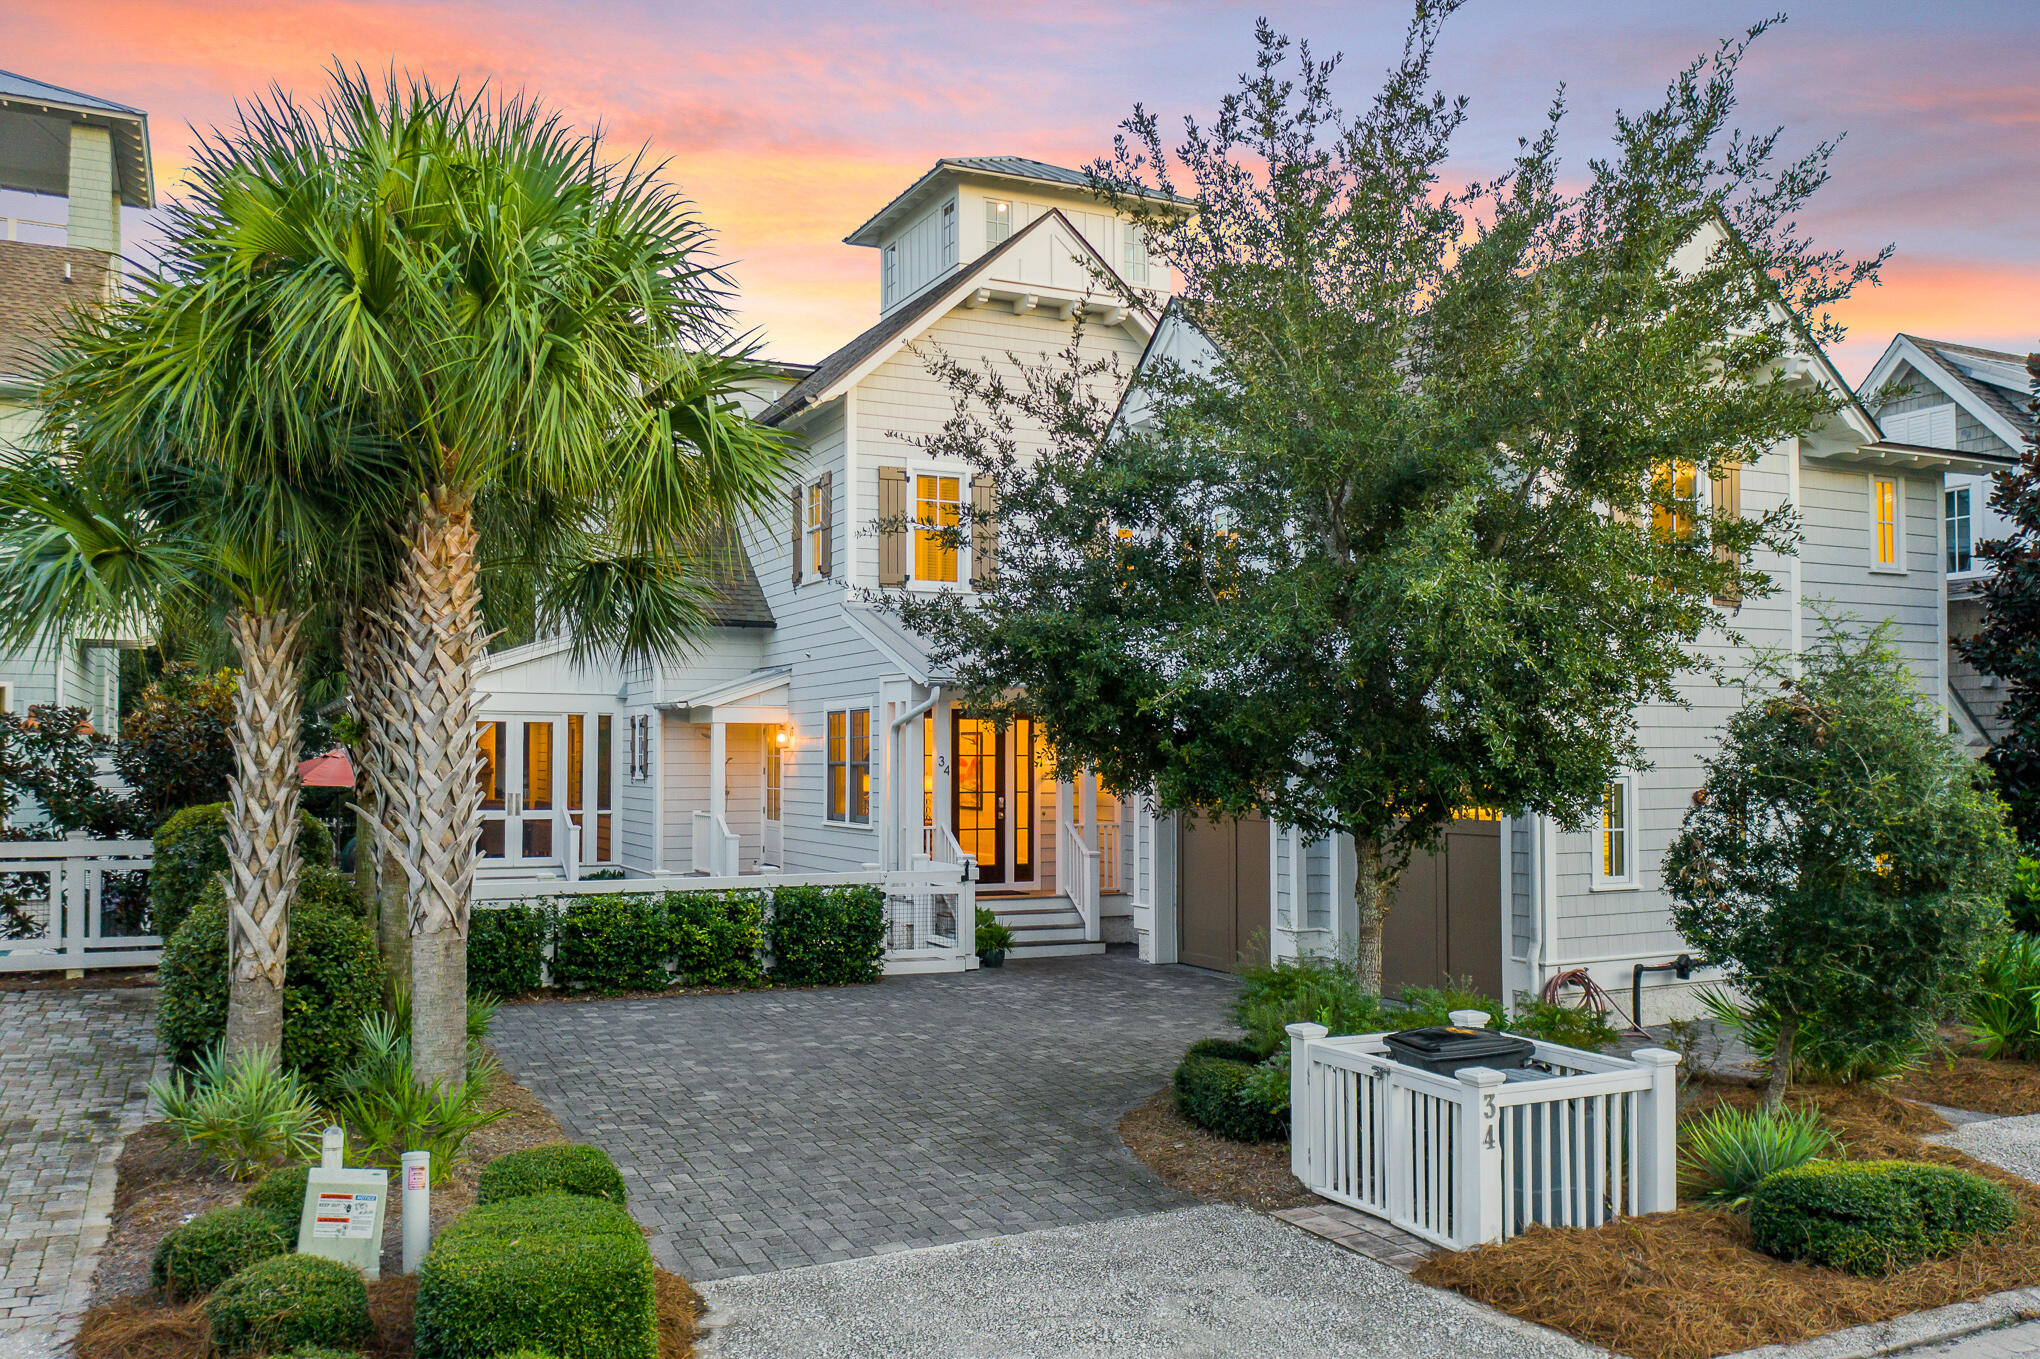 dave-warren-real-estate-photography-118